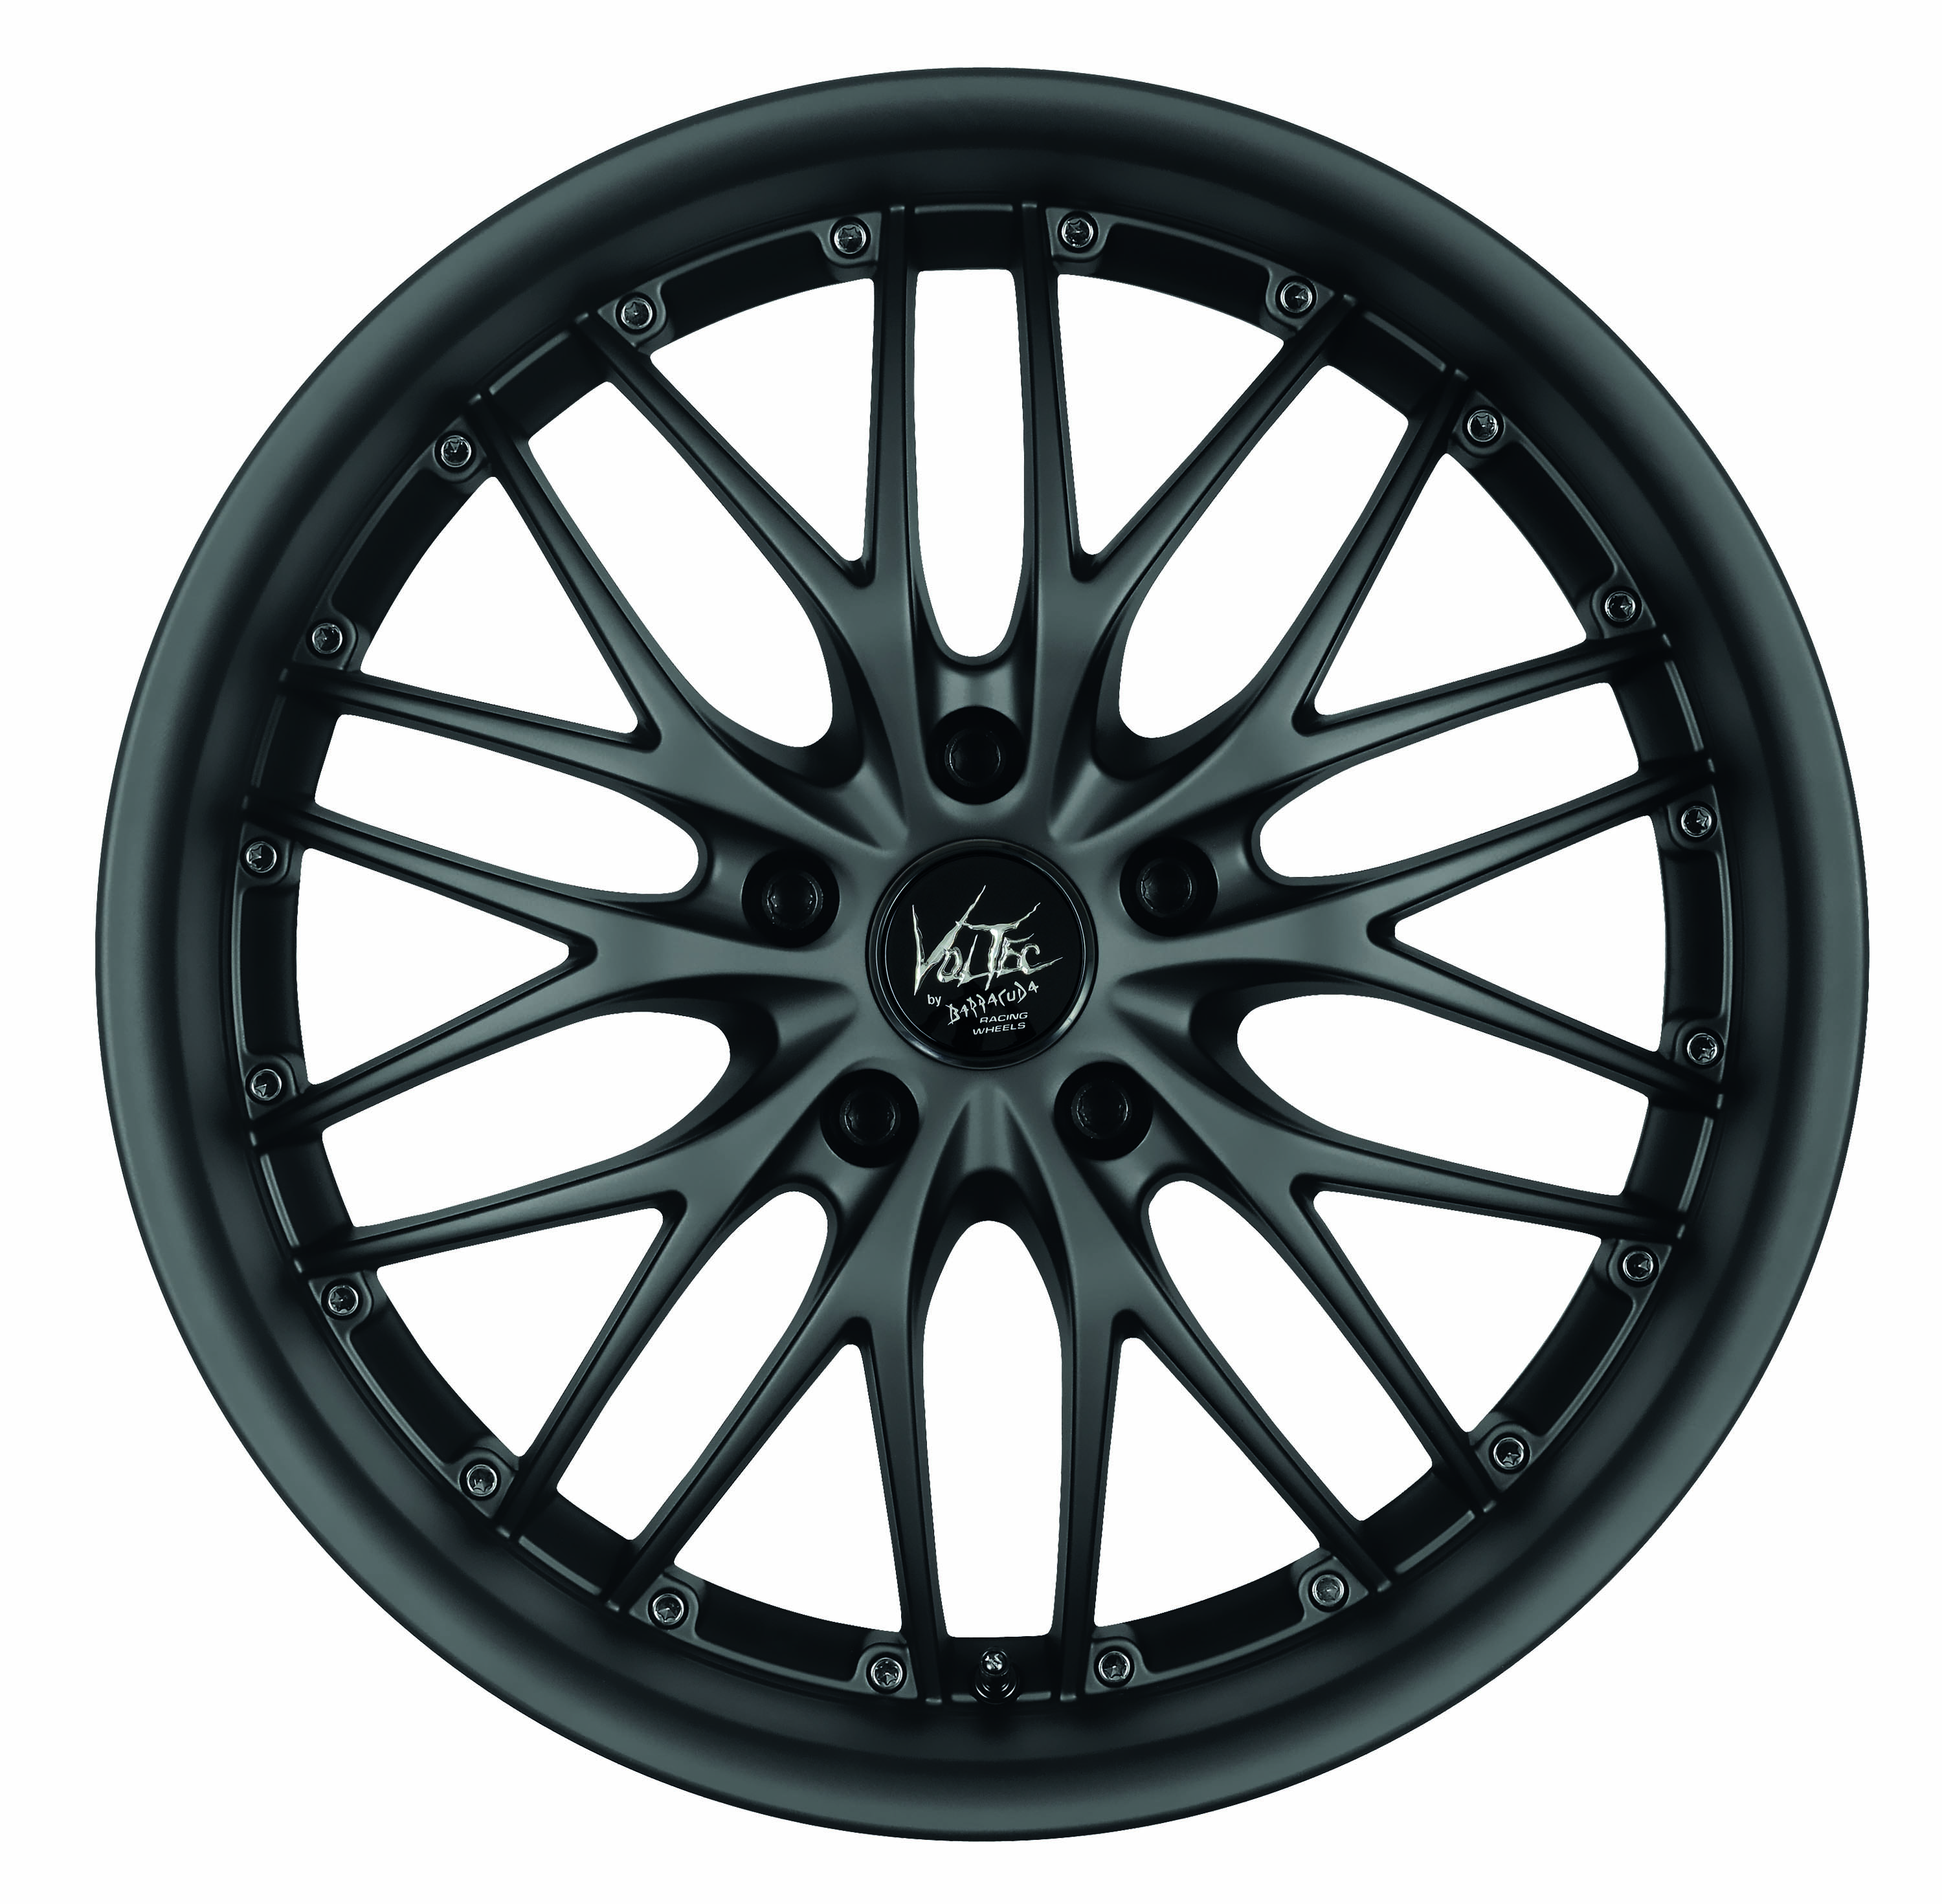 BARRACUDA VOLTEC T6 Gunmetal polished - 10x19 / 5x120 / ET18, RTVO610918T/GM_MP